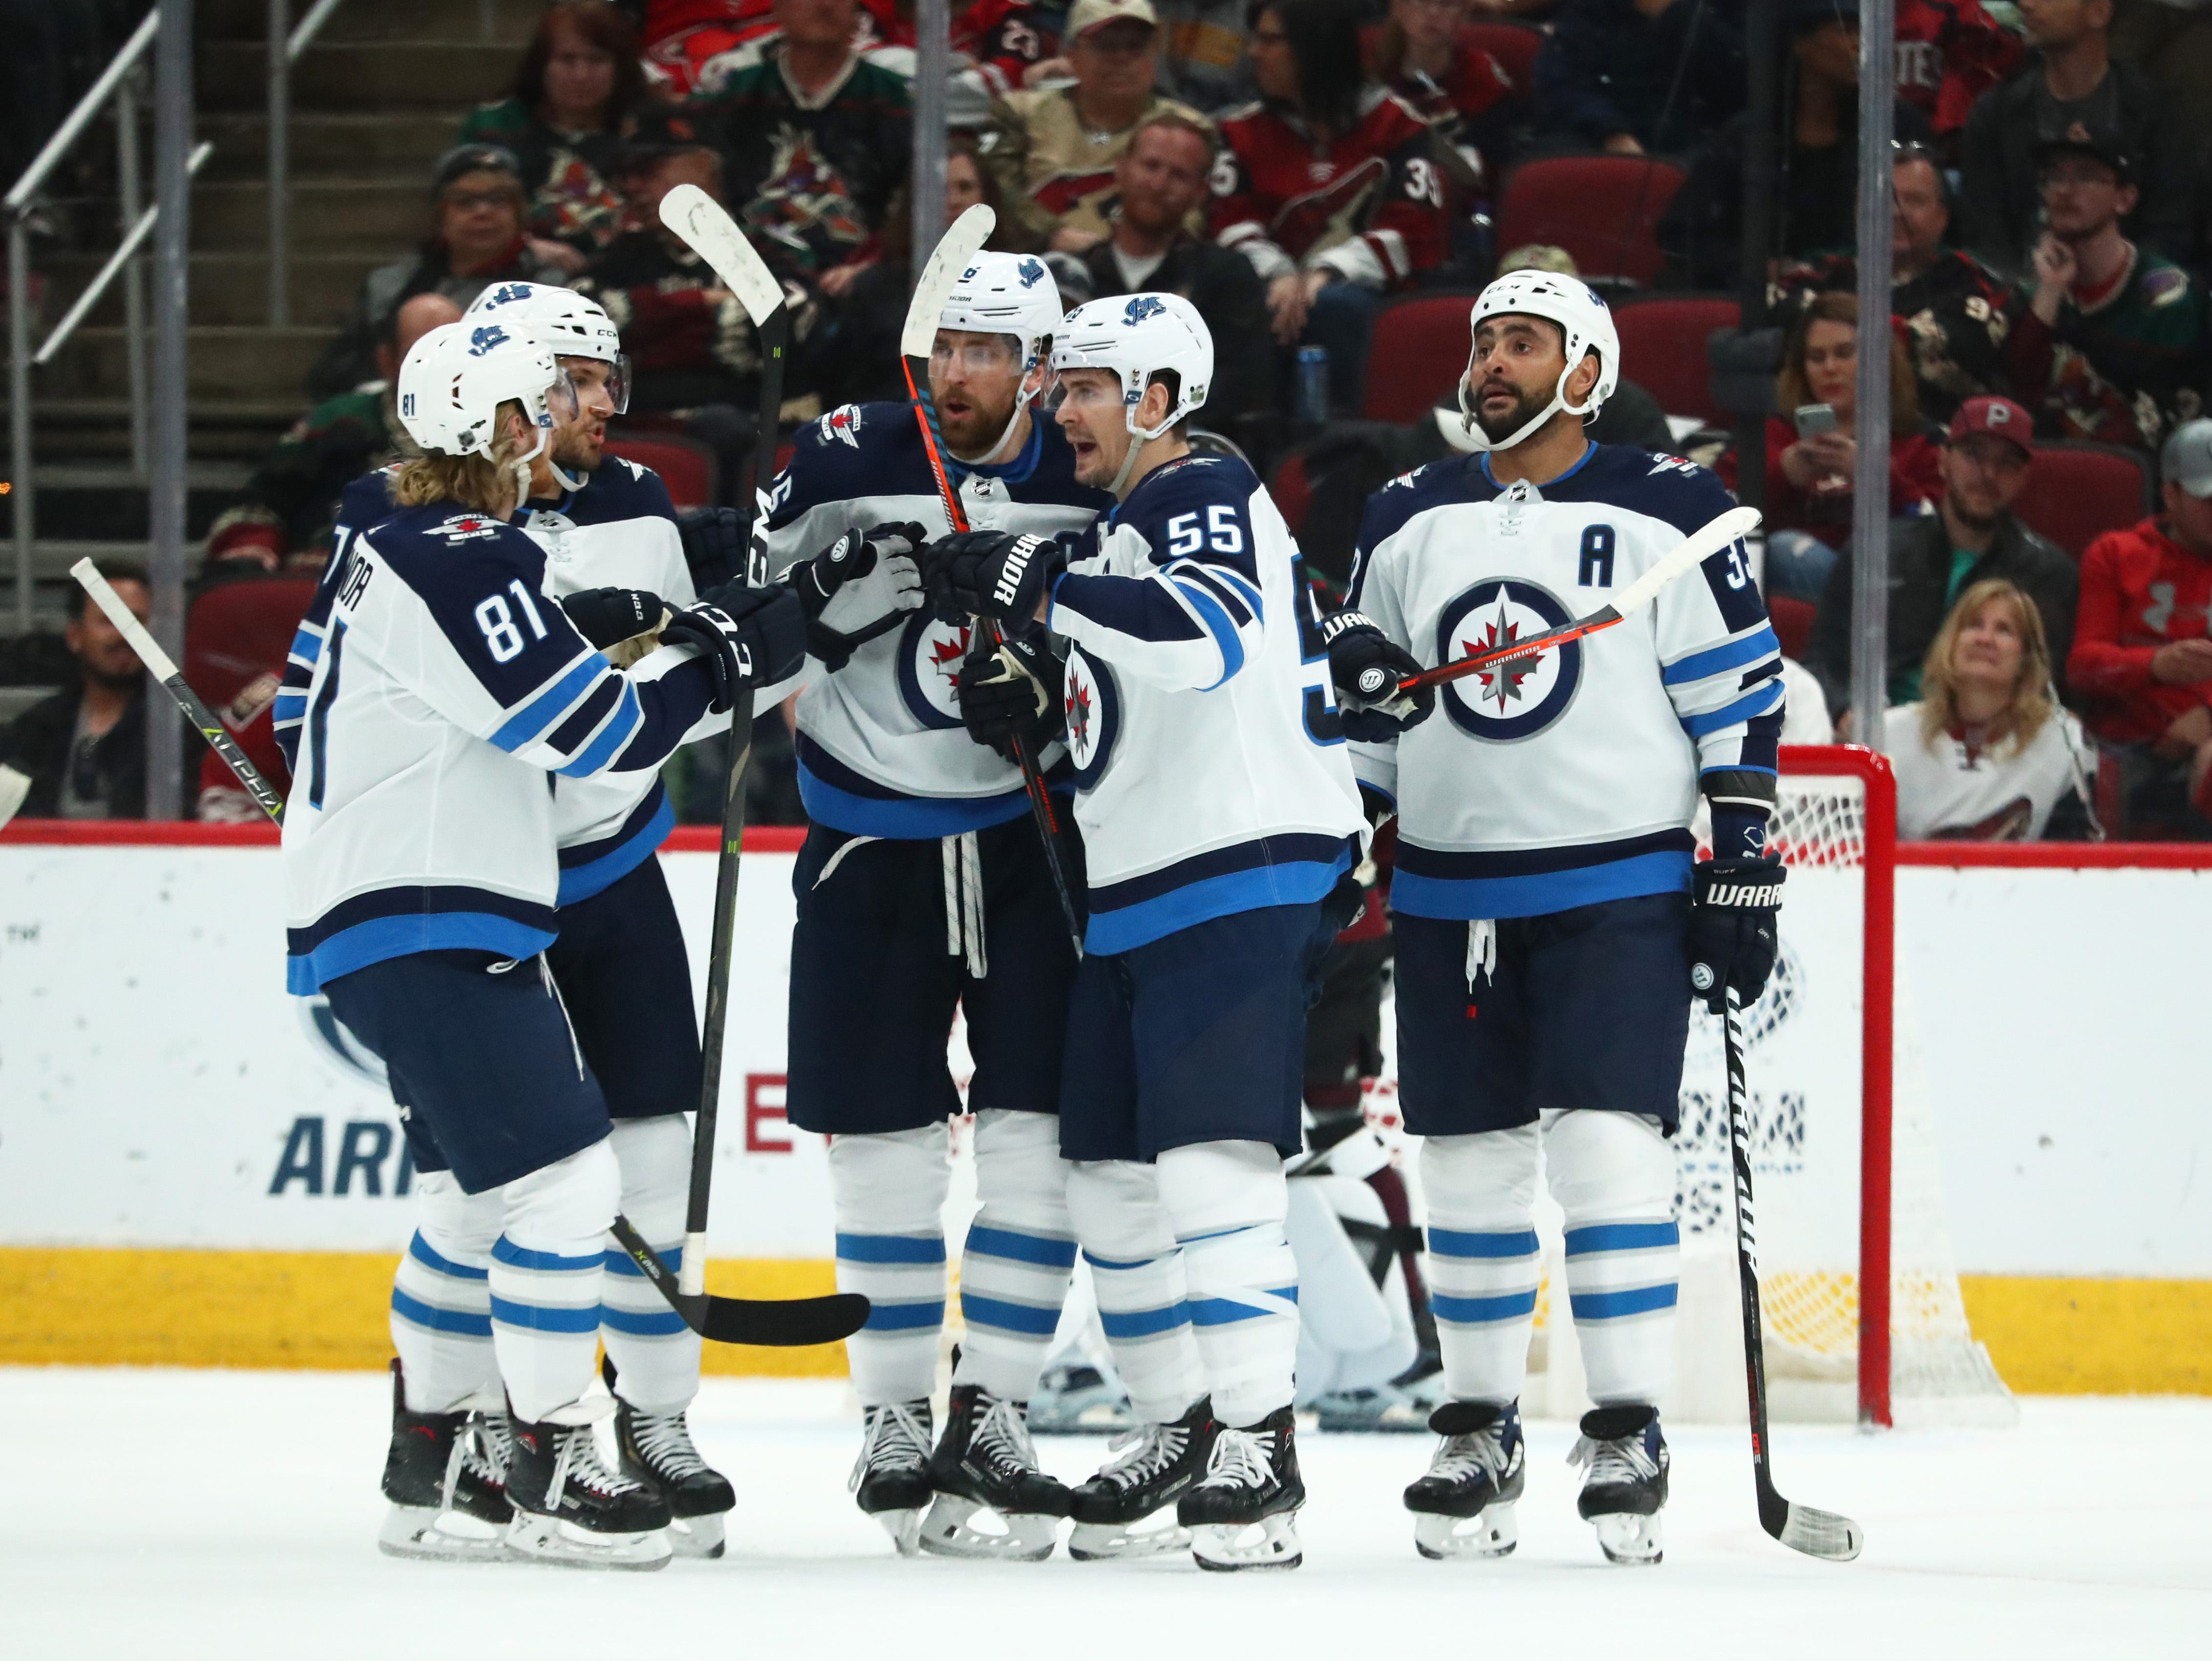 Apr 6, 2019; Glendale, AZ, USA; Winnipeg Jets center Mark Scheifele (55) celebrates with teammates after scoring a goal against the Arizona Coyotes in the first period at Gila River Arena. Mandatory Credit: Mark J. Rebilas-USA TODAY Sports